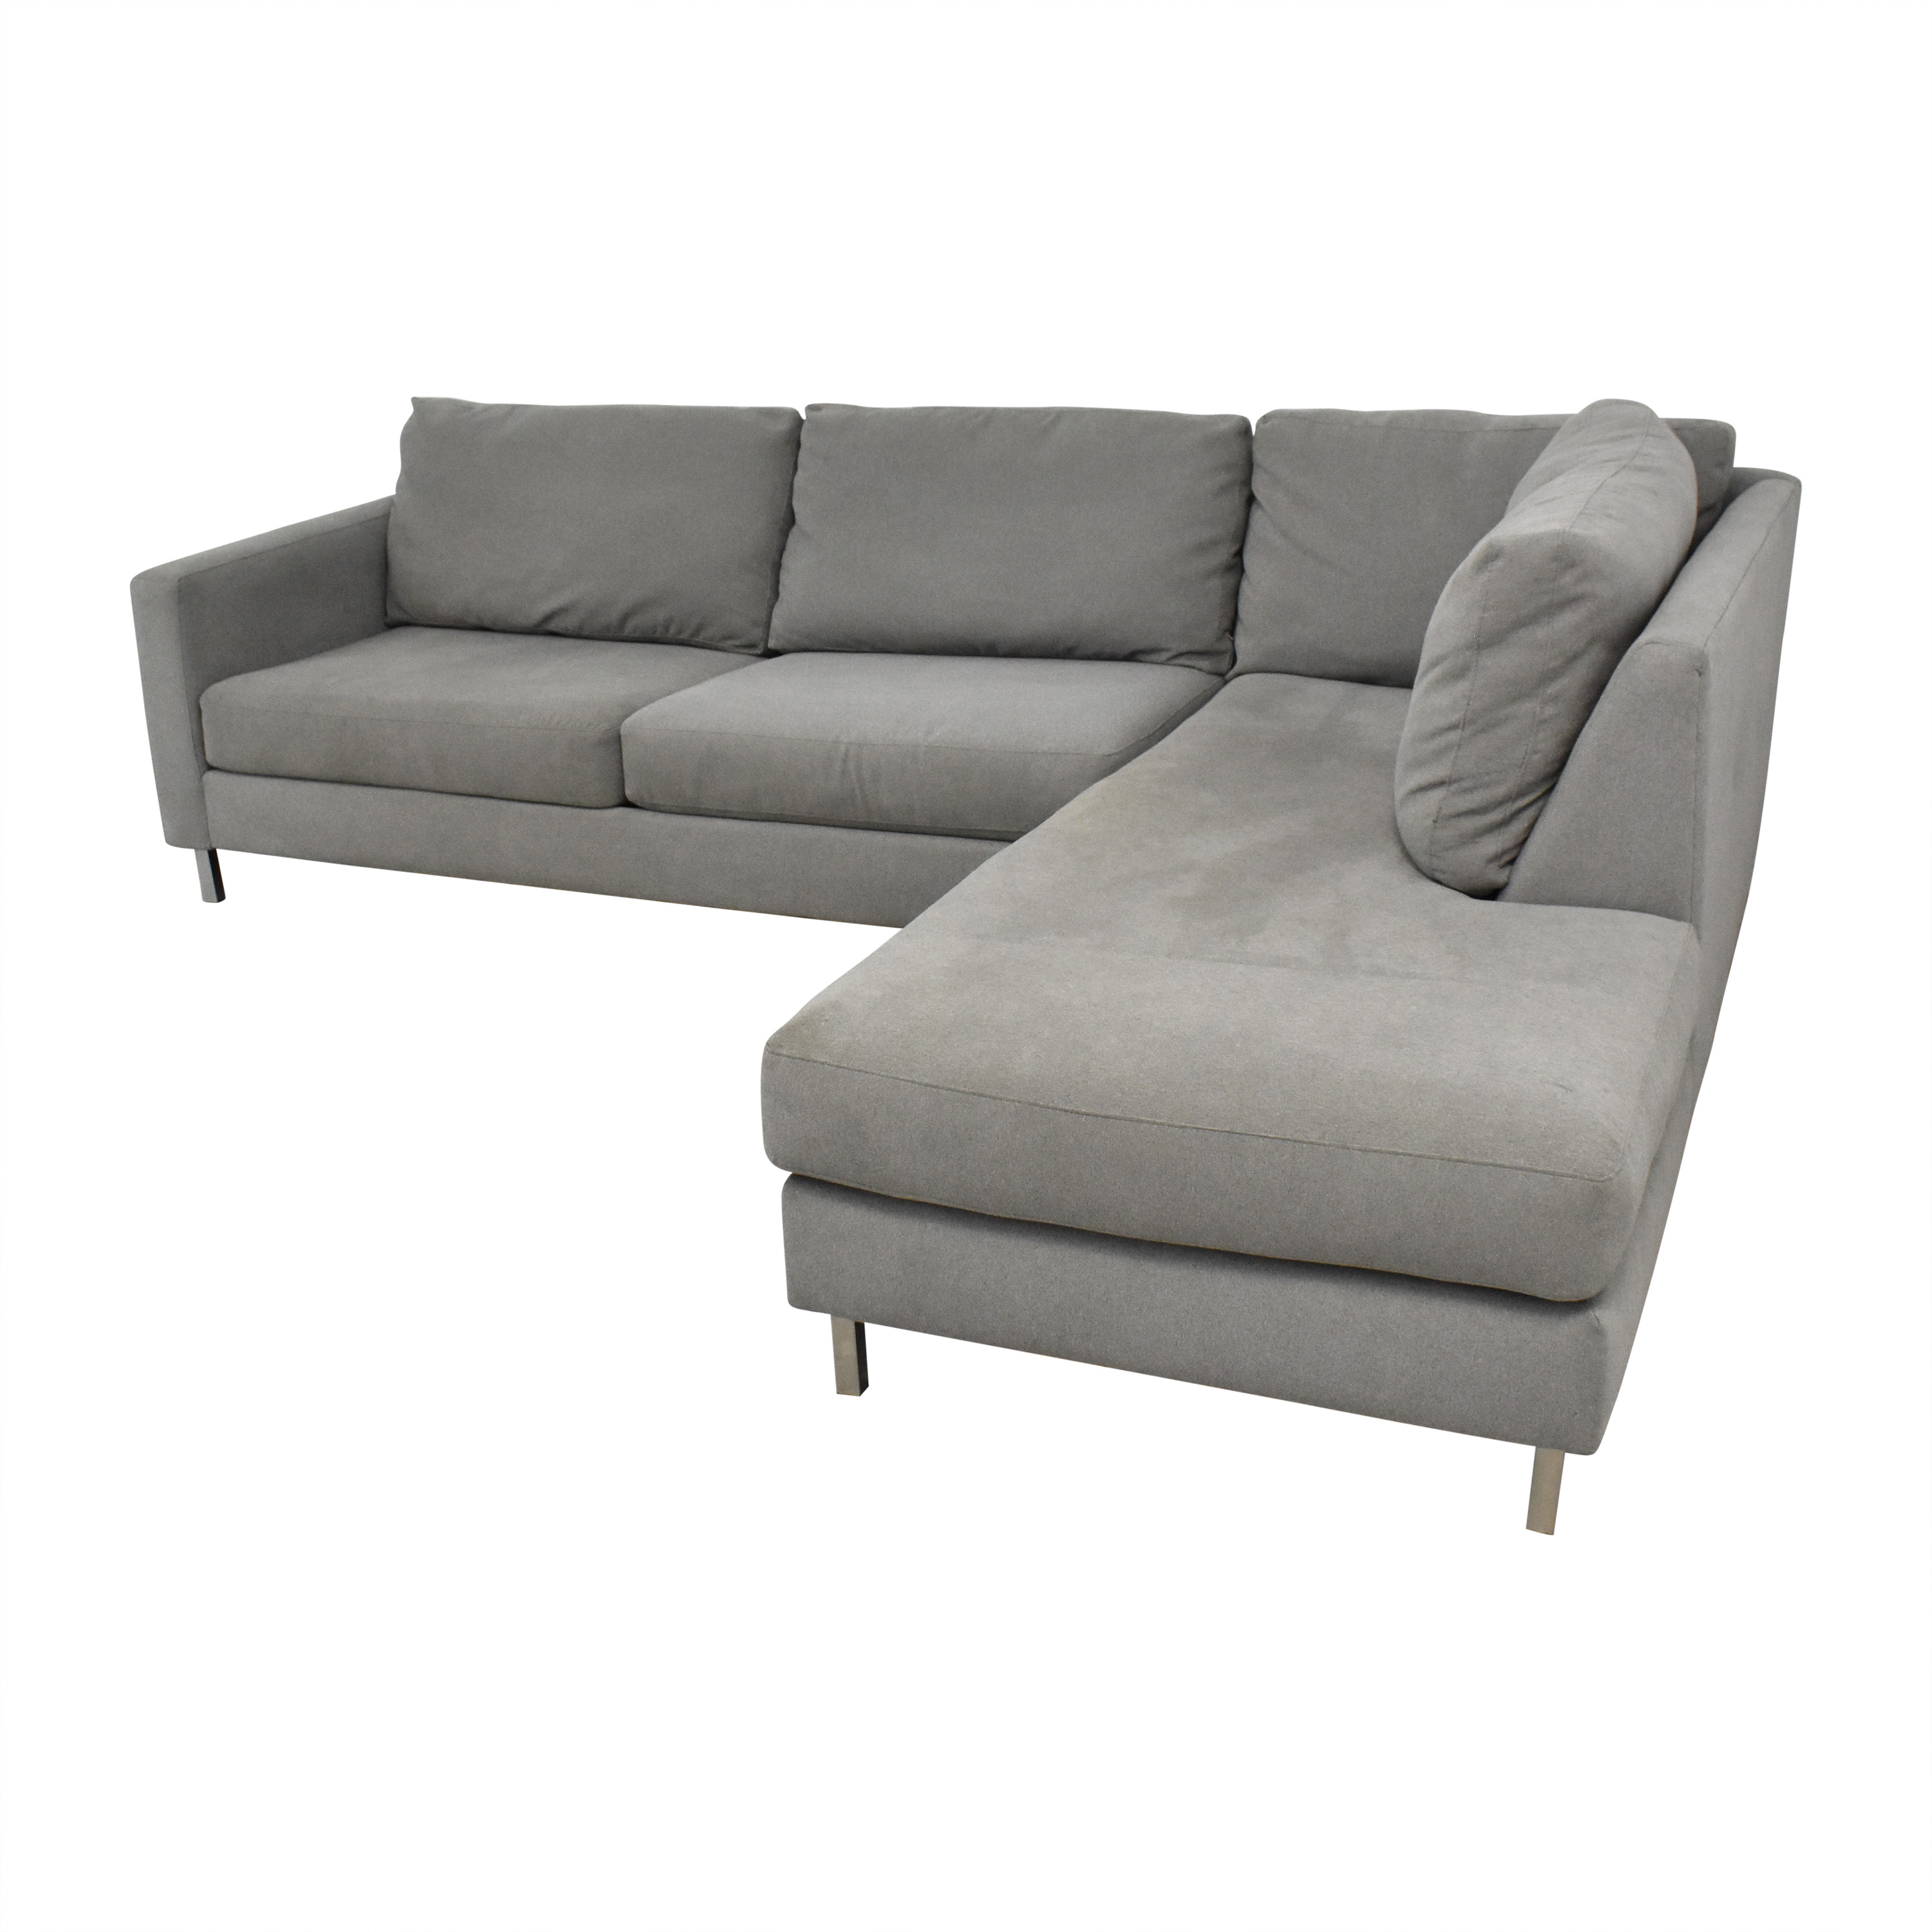 buy Raymour & Flanigan Modern Grey Sectional Couch Raymour & Flanigan